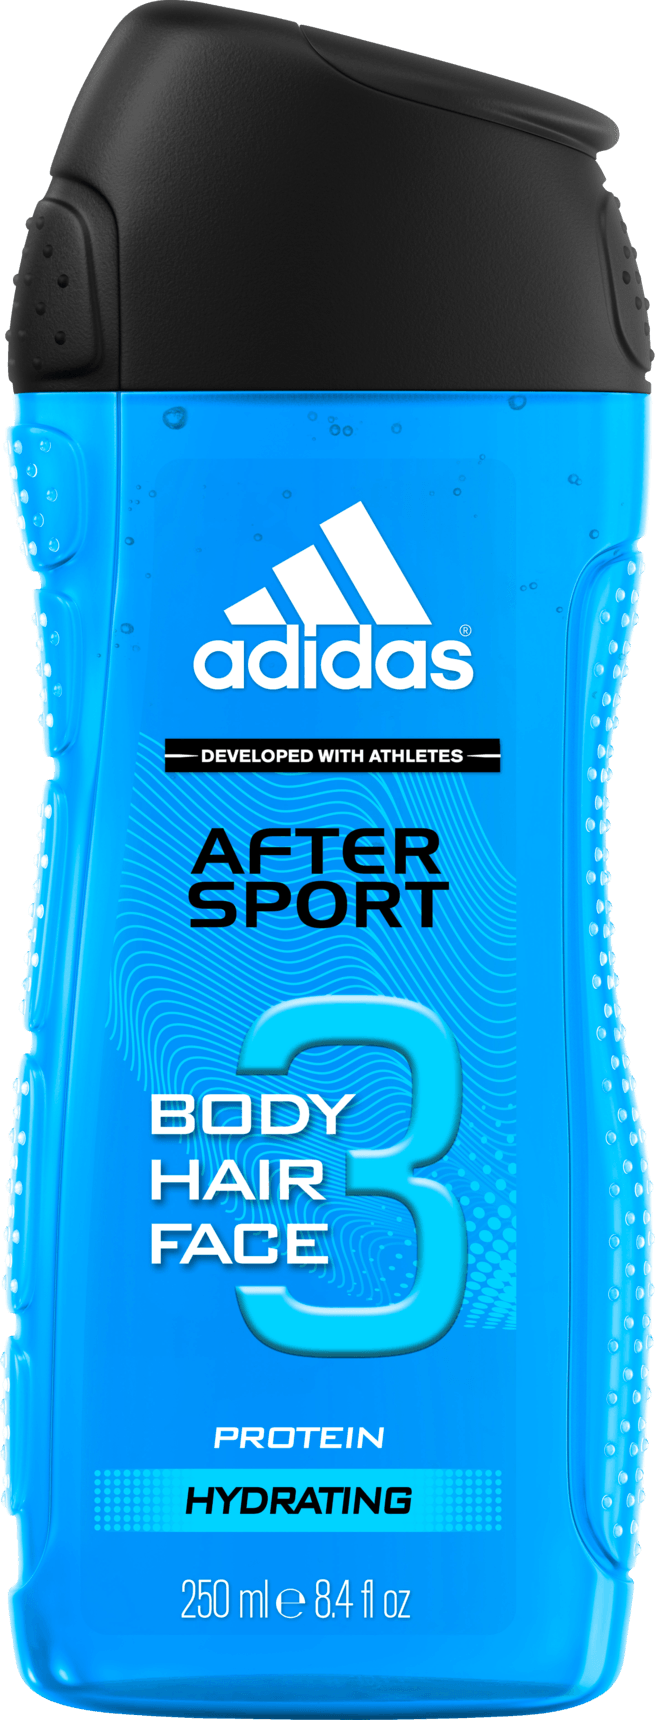 7003043ad Adidas Shower Gel - After Sport 250ml | Bath & Shower | Shower gel ...